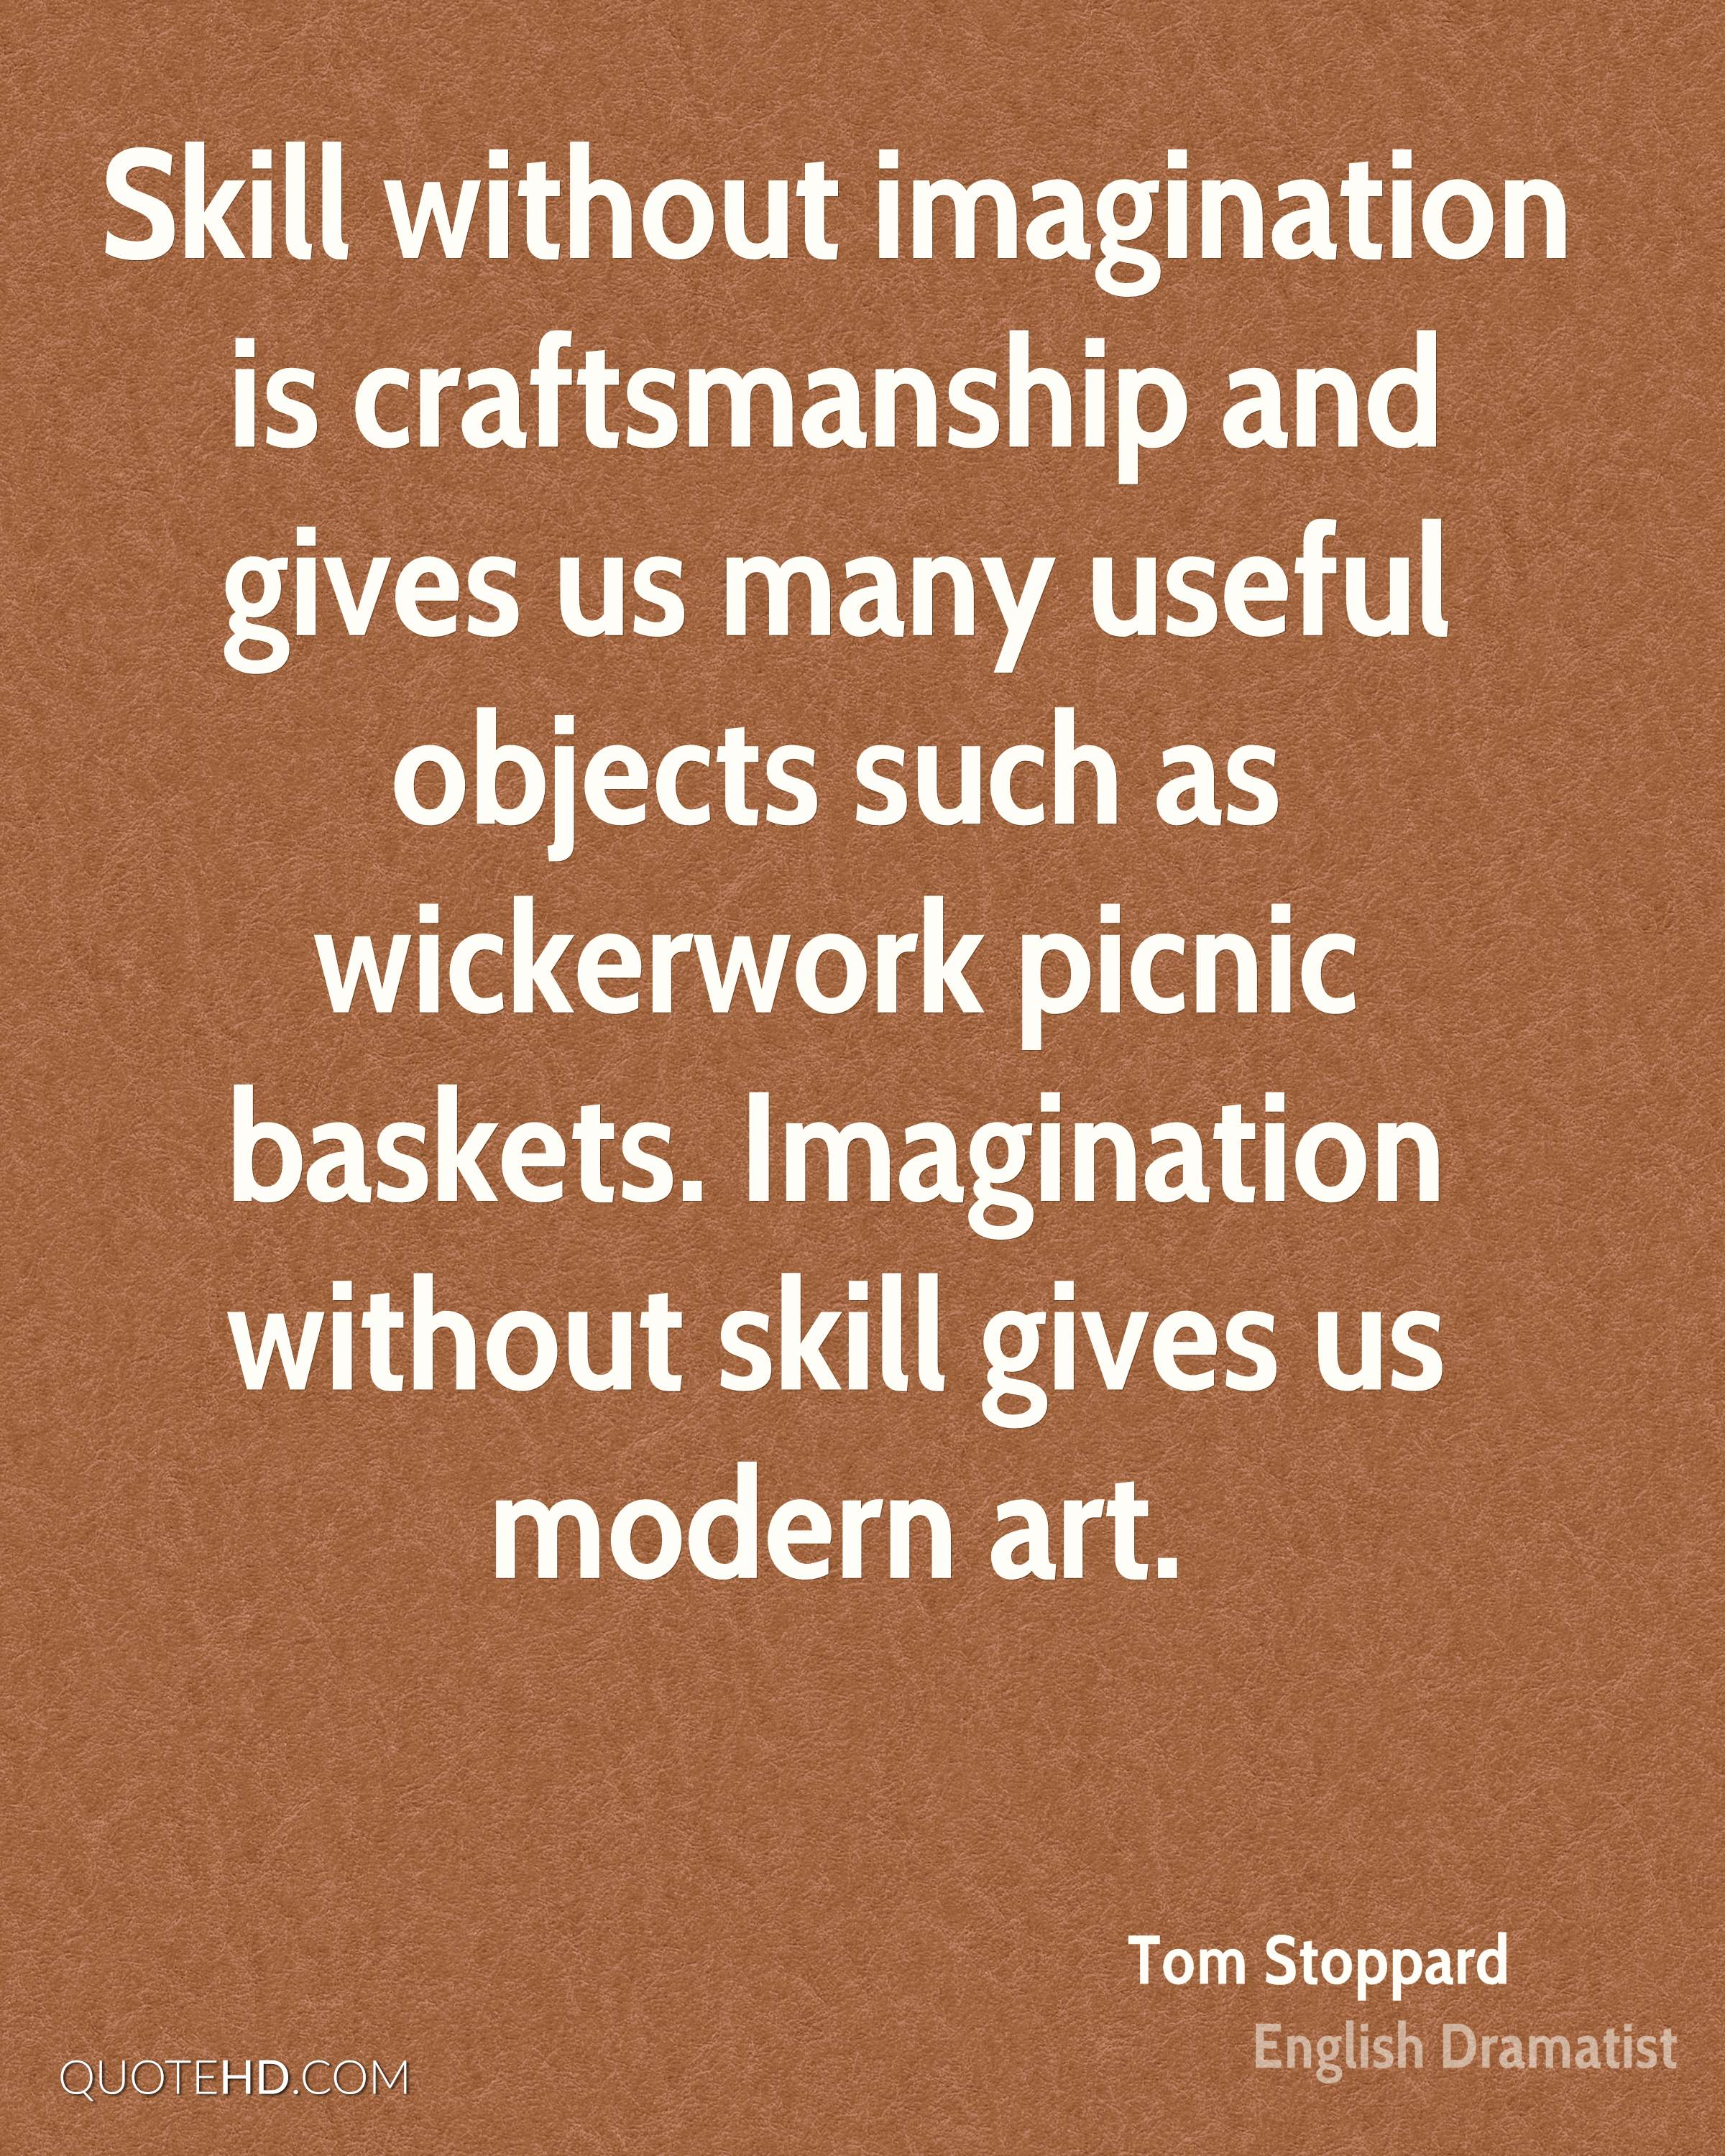 Skill without imagination is craftsmanship and gives us many useful objects such as wickerwork picnic baskets. Imagination without skill gives us modern art.